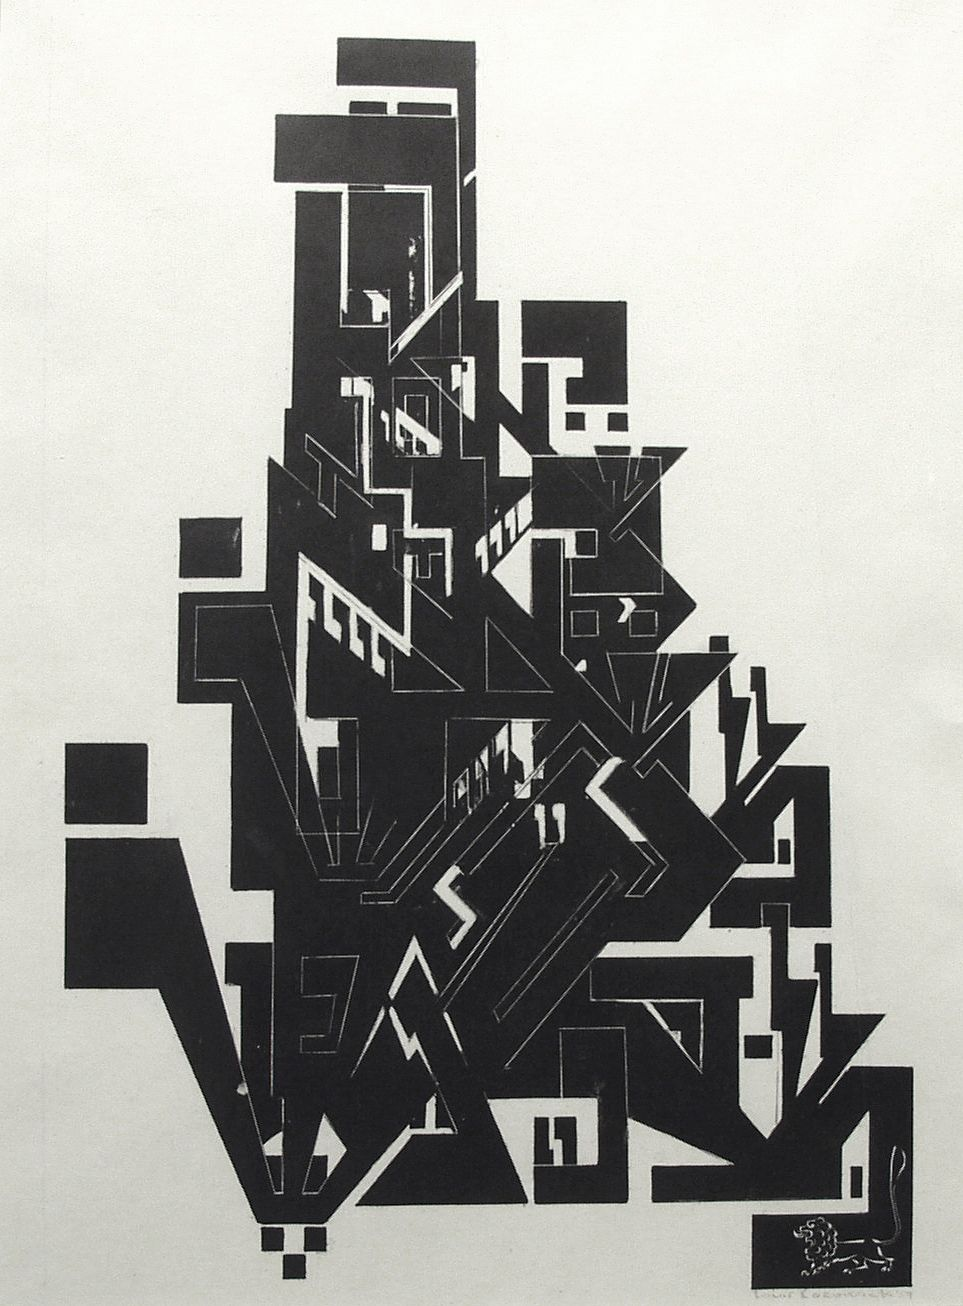 Louis Lozowick, Hebraica, 1959, lithograph, 14 7/8 x 10 7/8 inches (image size), 22 3/4 x 18 3/4 inches (frame size), Edition of 20